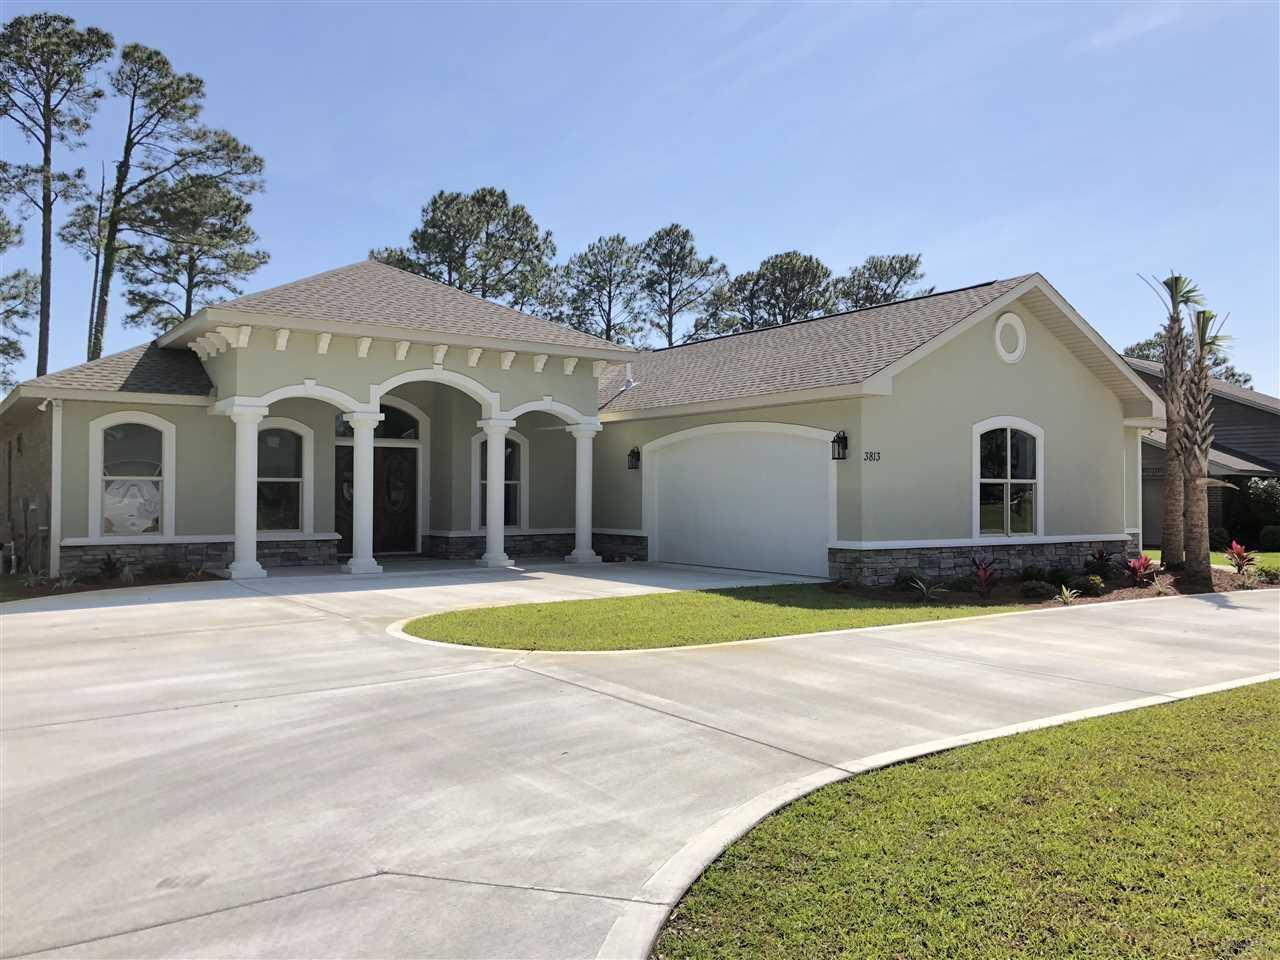 Homes For Sale Tiger Point Gulf Breeze Fl